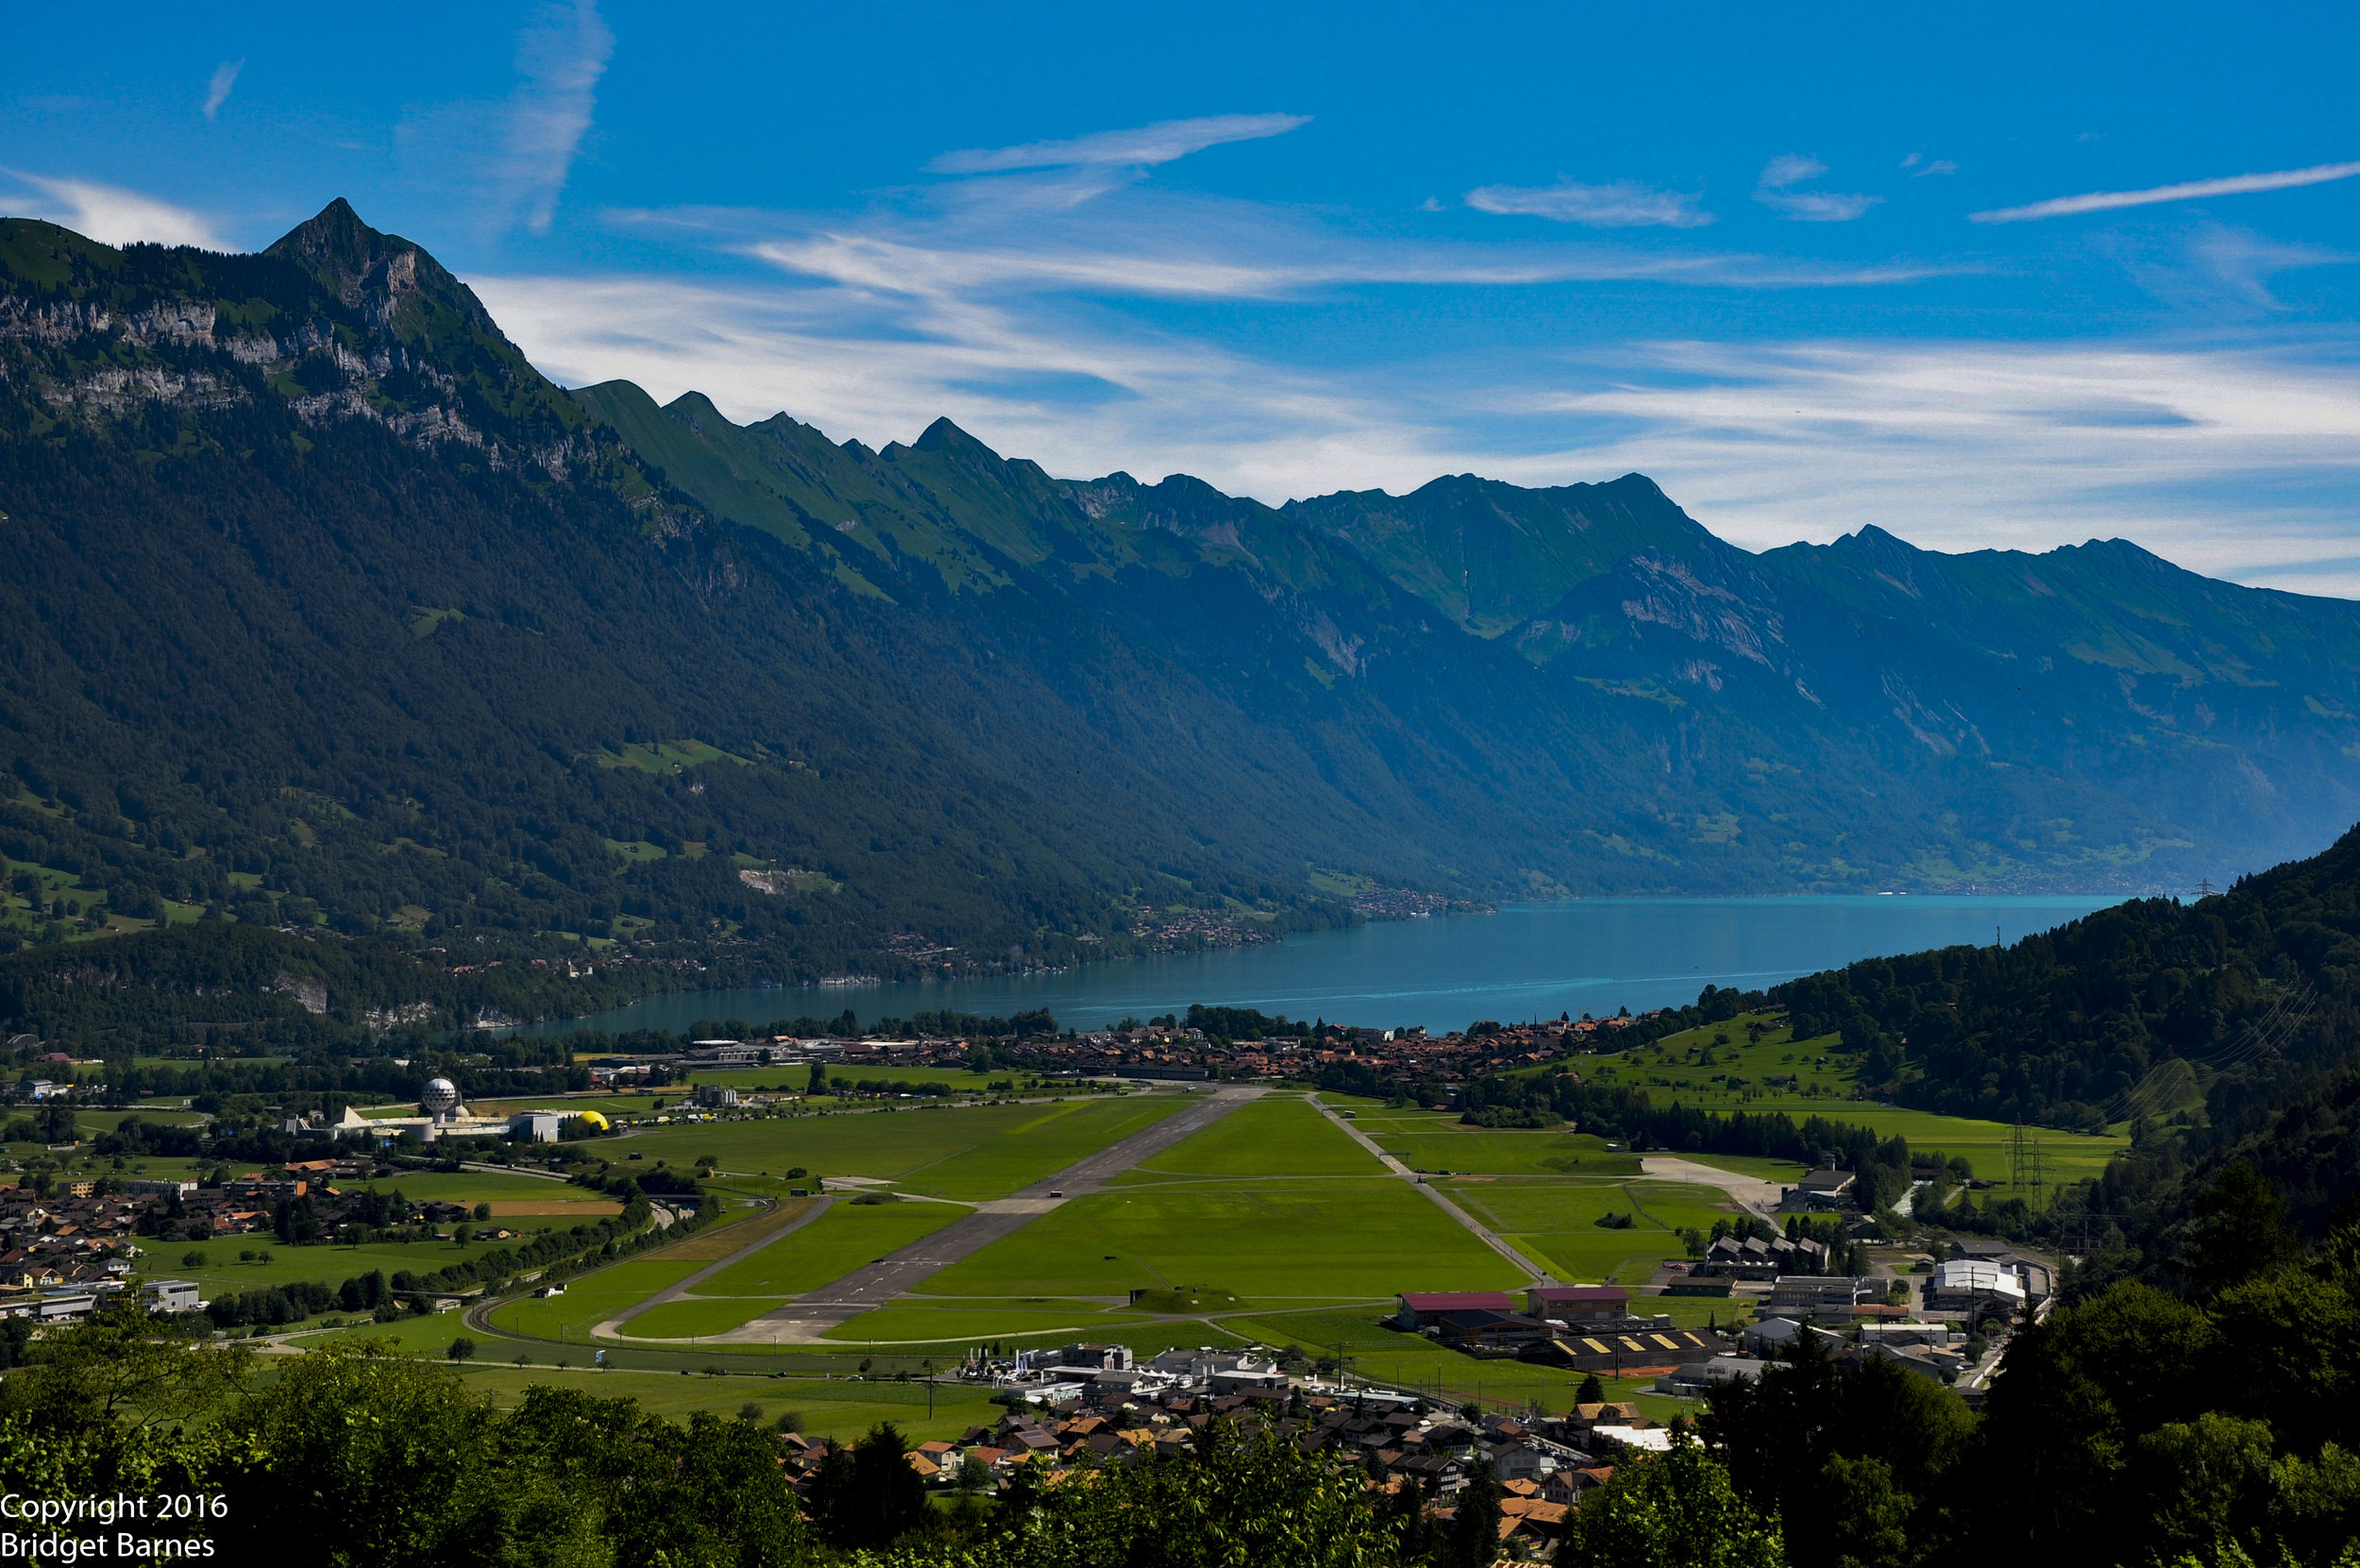 The view of Interlaken and Lake Brienz from our drive up Saxetenstrasse